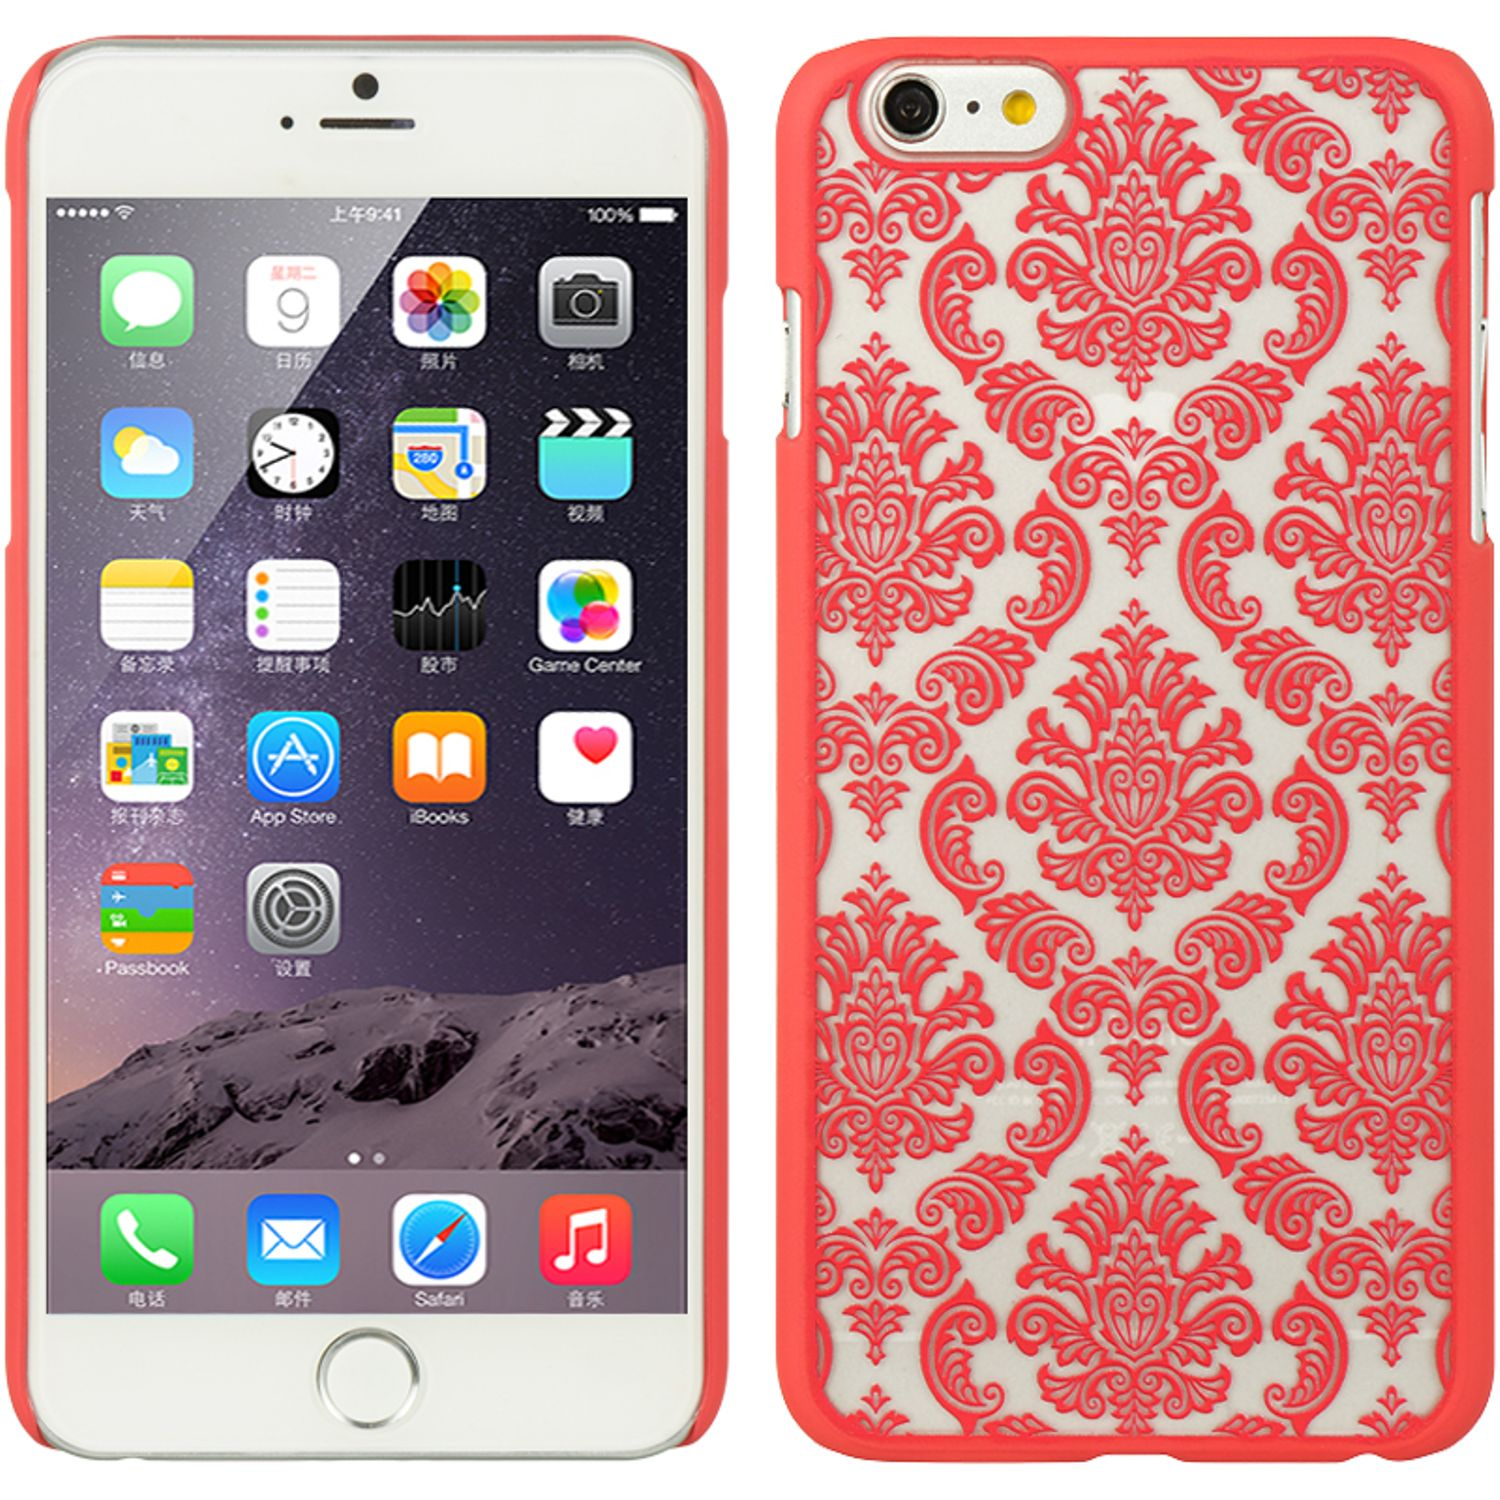 iPhone 6s plus case by Insten Hard Rubberized Case for Apple iPhone 6s Plus / 6 Plus - Red/White